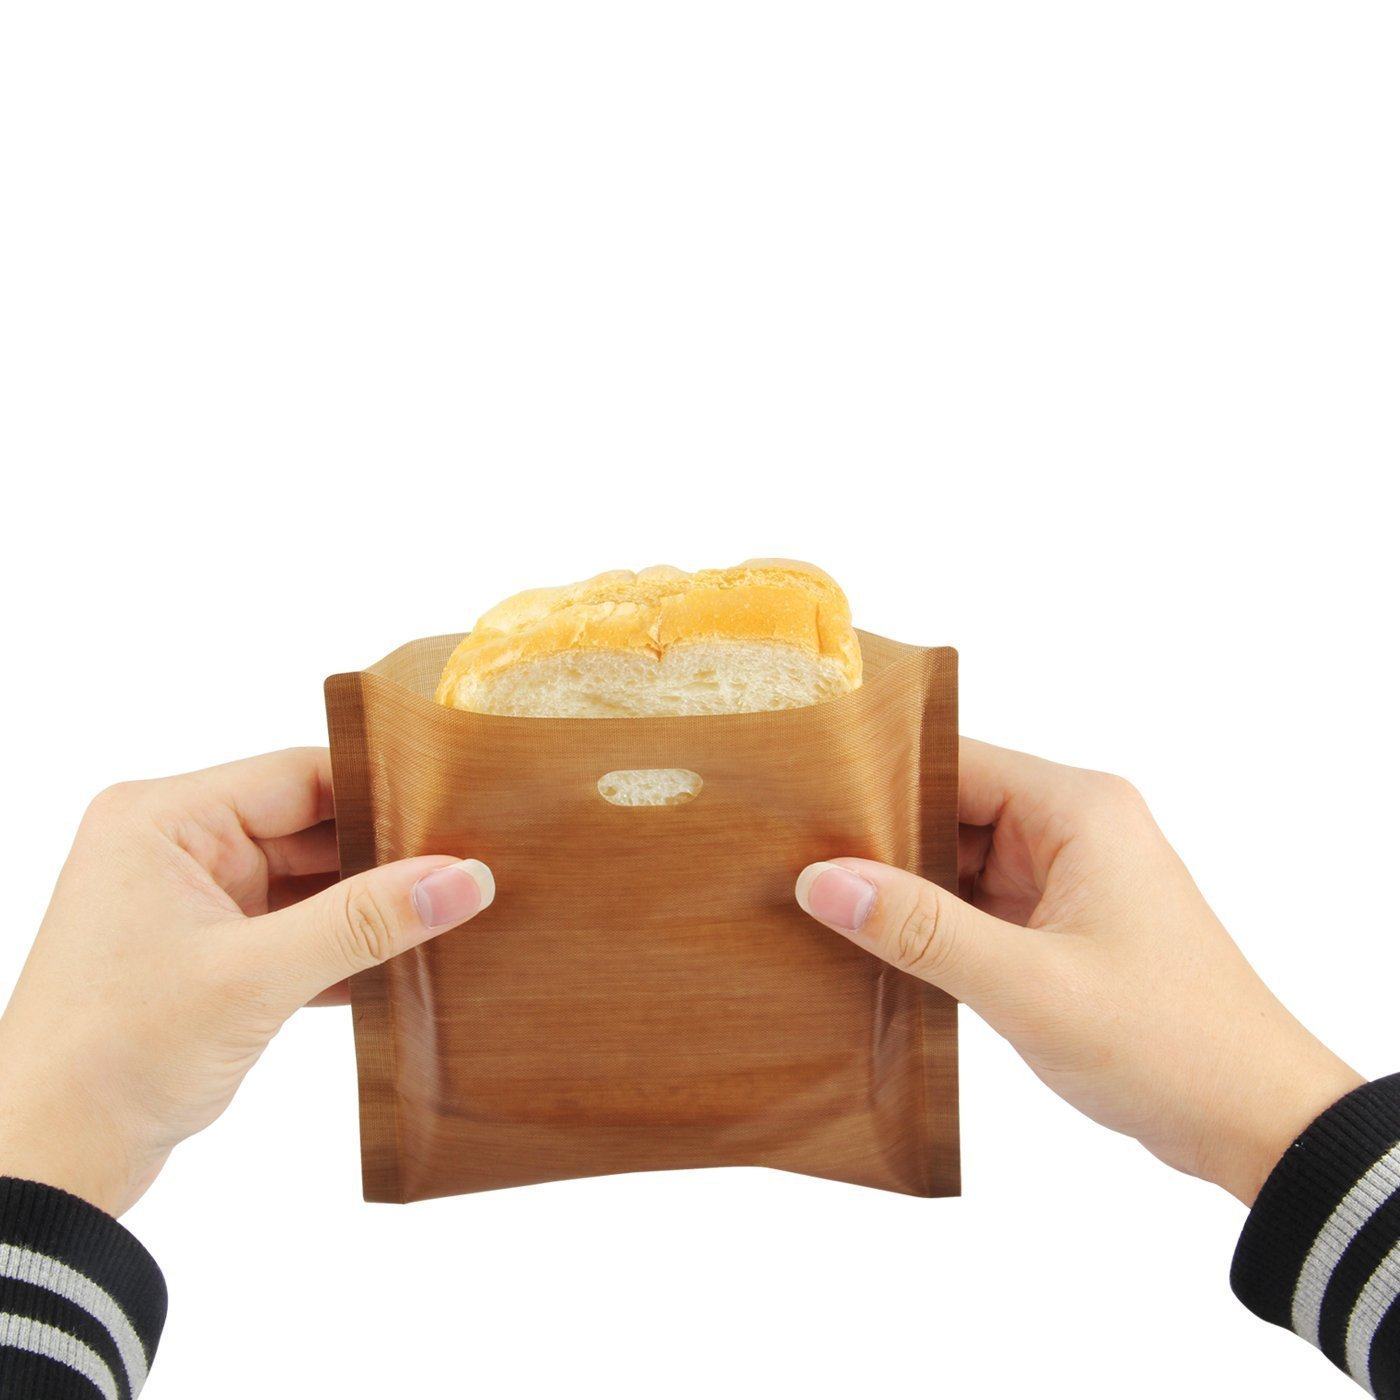 Toaster bags: reusable, non-stick, (6 PACK), durable, grill bags, grilled cheese bags, sandwich bag, easy to use, no mess, Teflon, FDA approved, grill parchment, baking parchment. (''SET Of 6'').